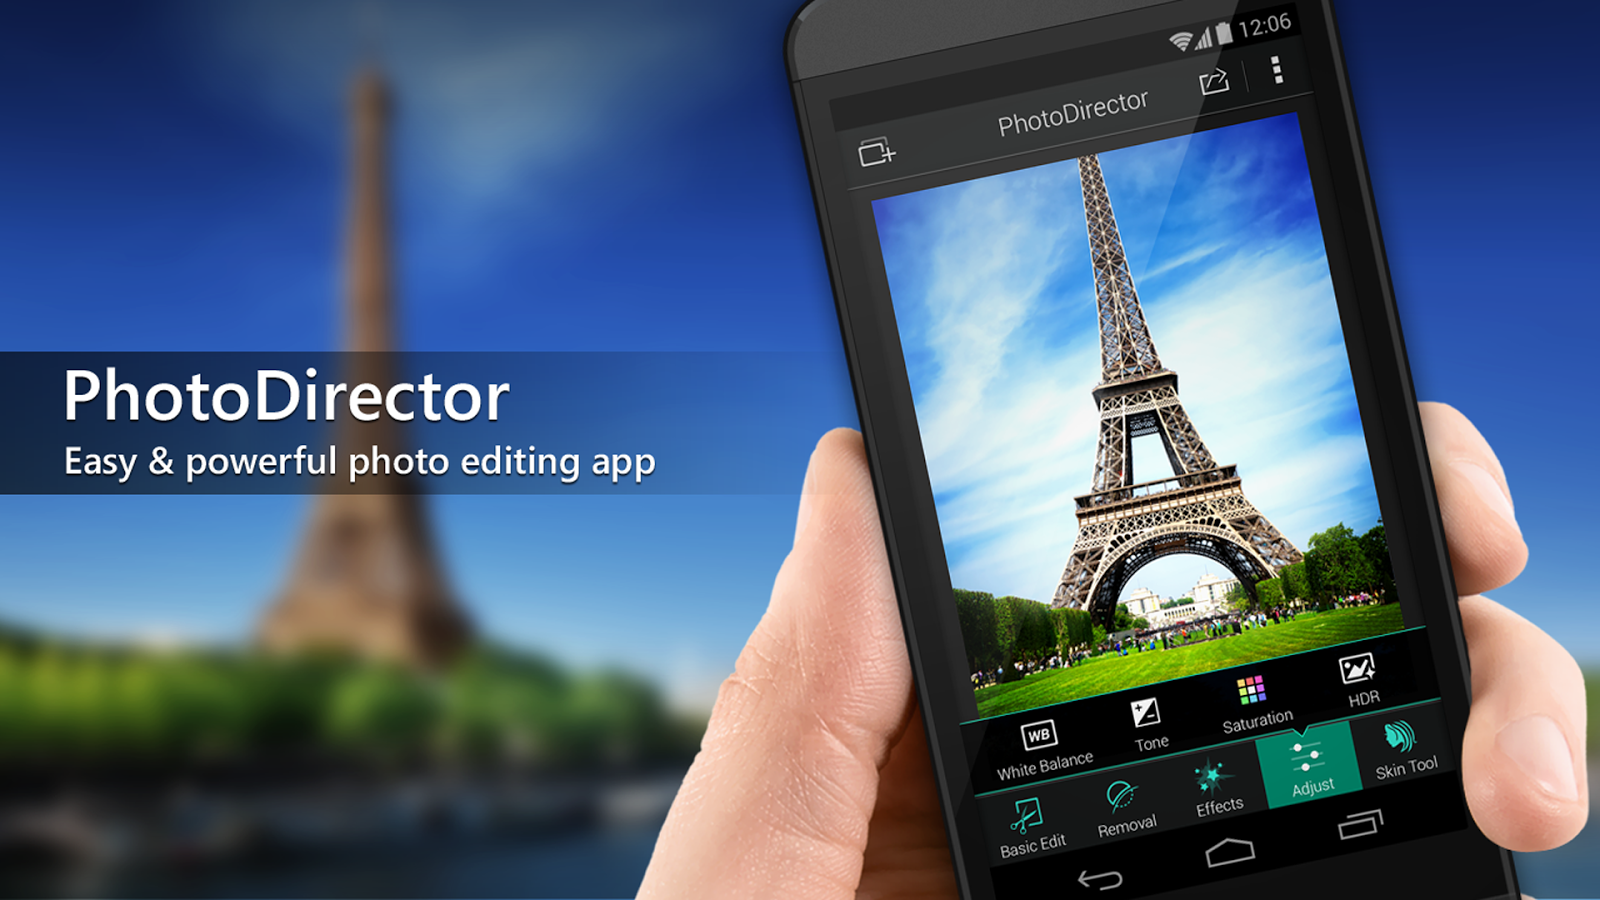 PhotoDirector - Bundle Version 6 2 1 APK Download - Android